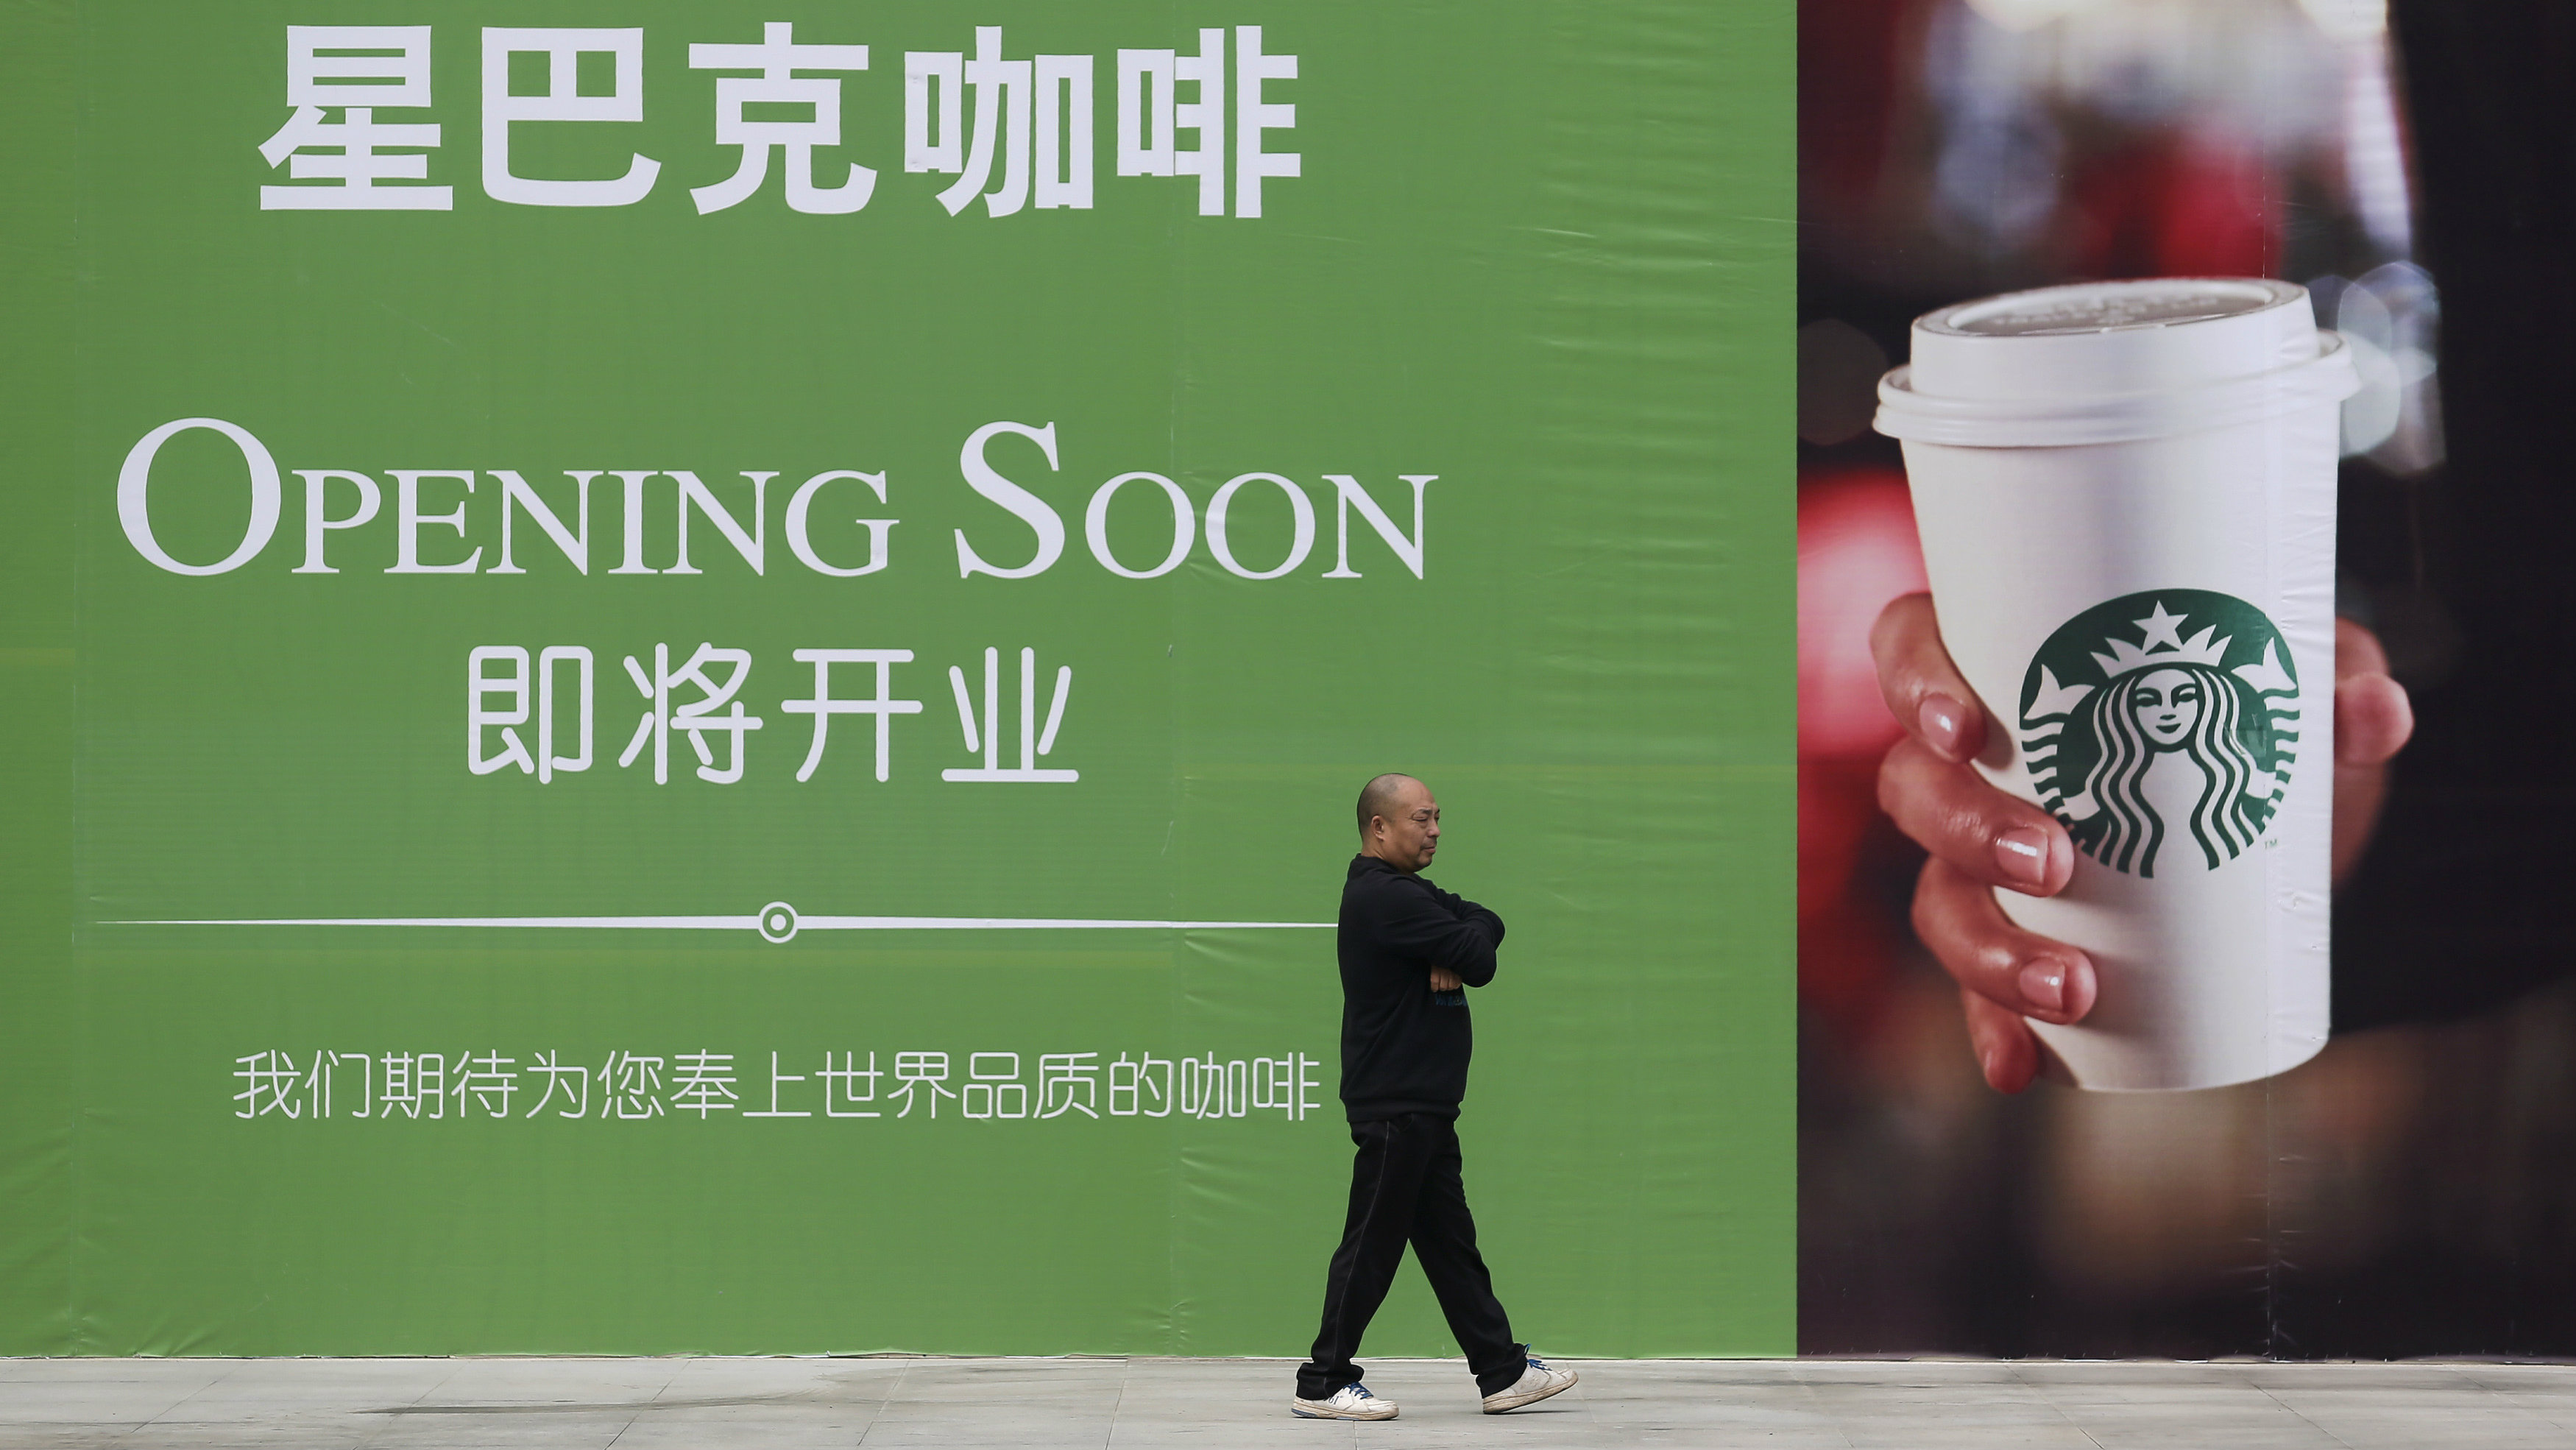 And In Is More A Than Already Opening Day Starbucks Store China sQdthrC